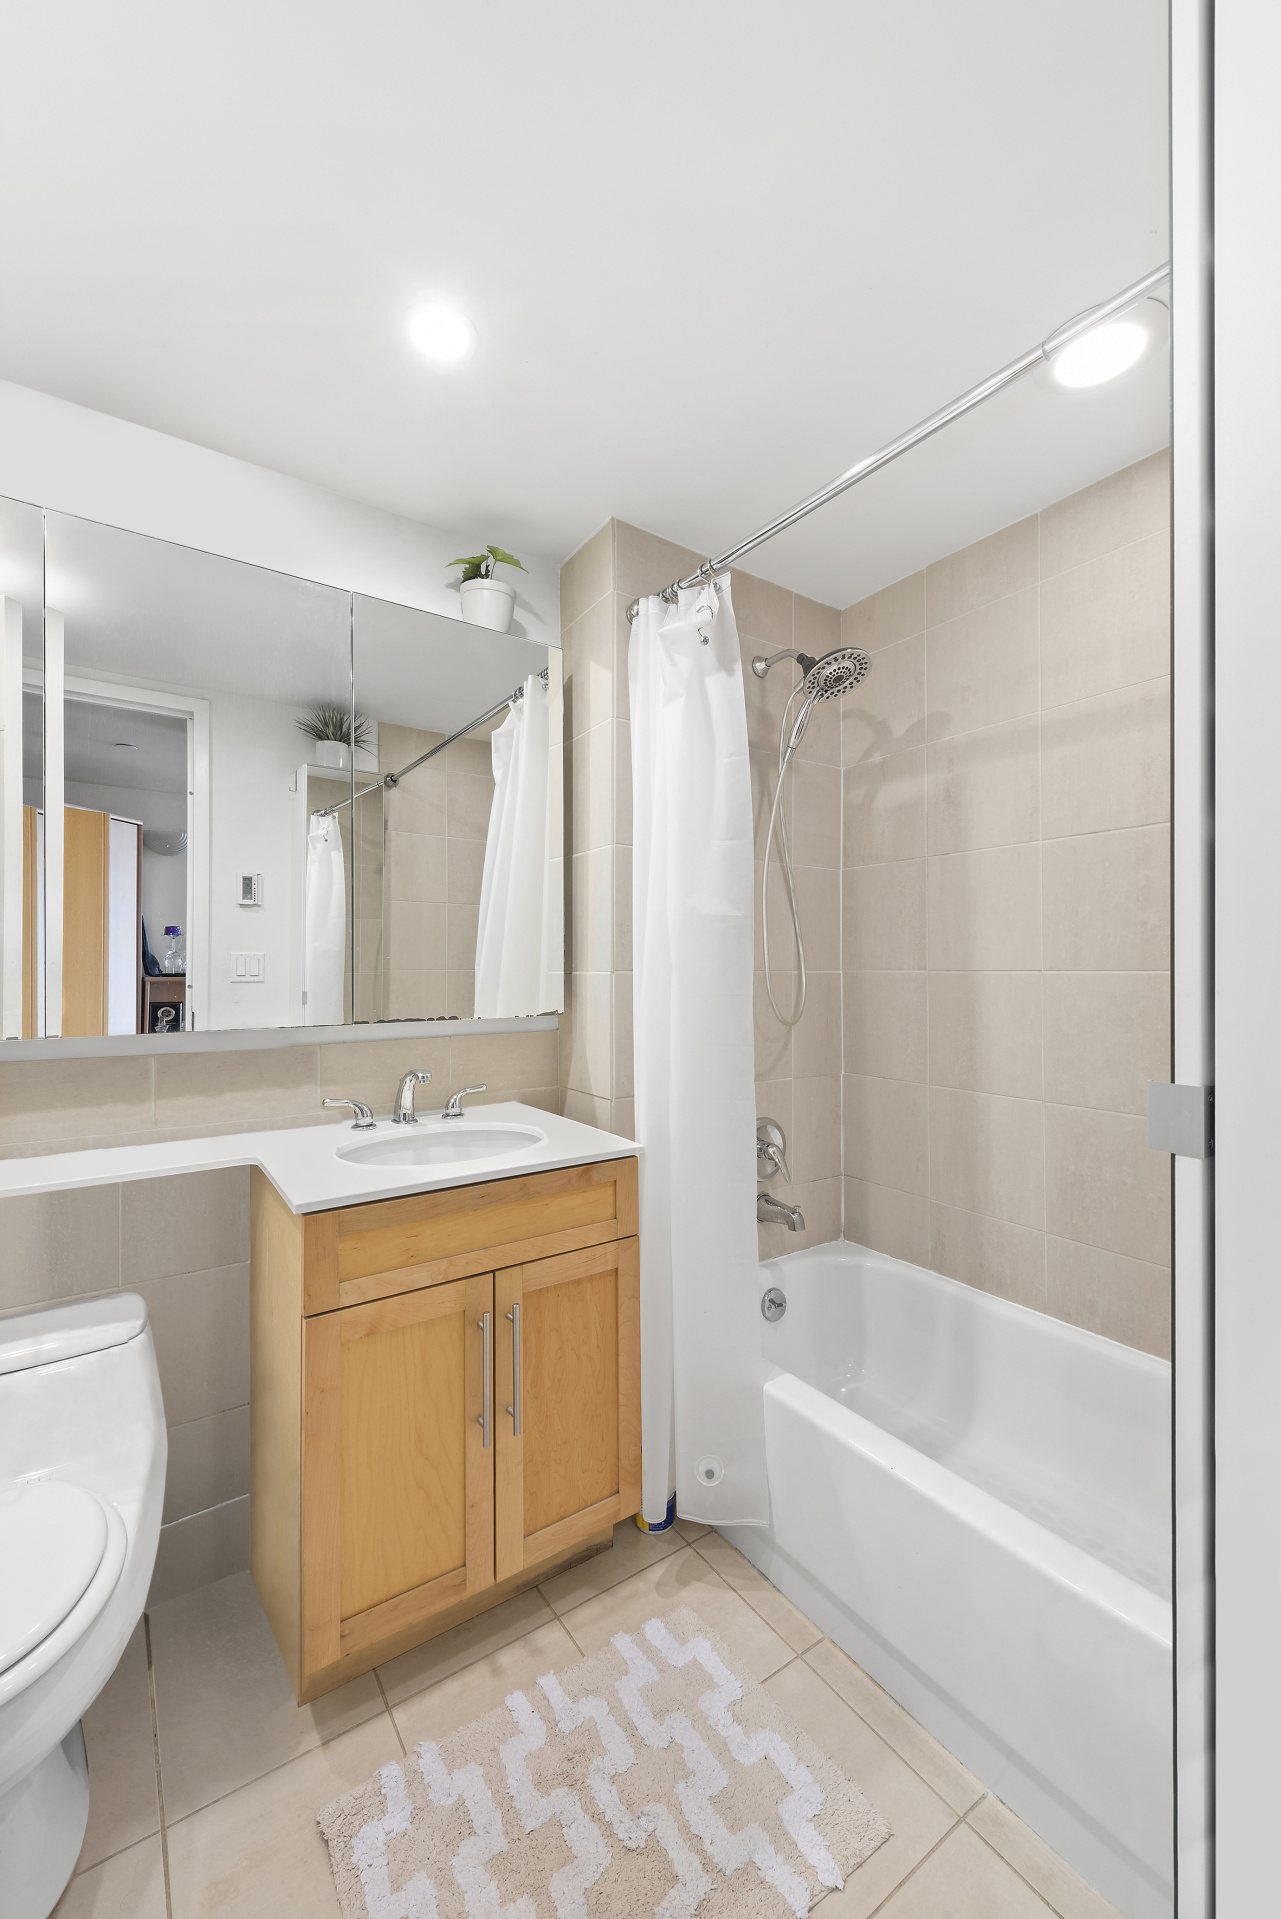 Apartment for sale at 53 Boerum Place, Apt 4-J